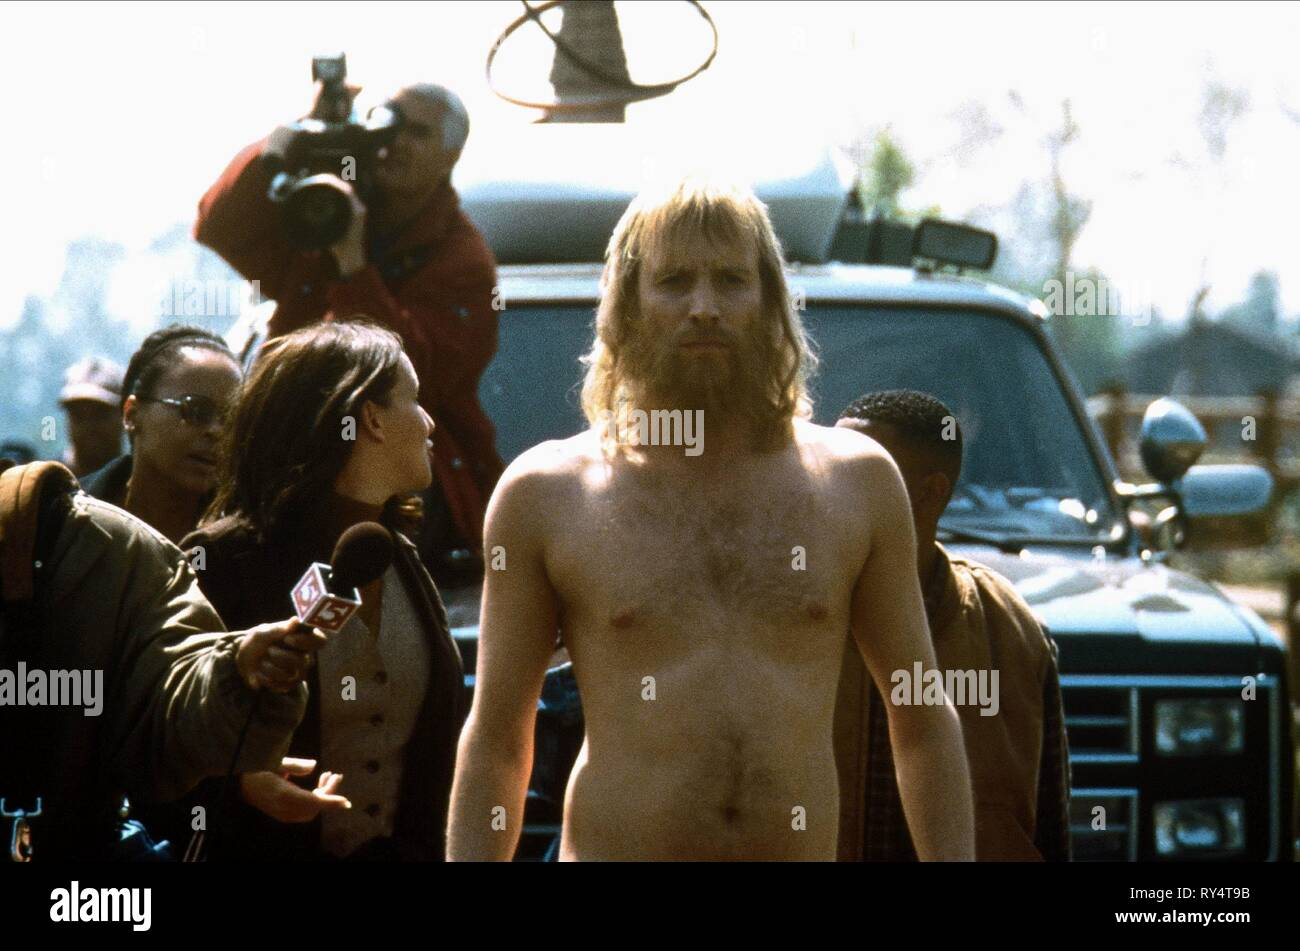 RHYS IFANS, HUMAN NATURE, 2001 - Stock Image